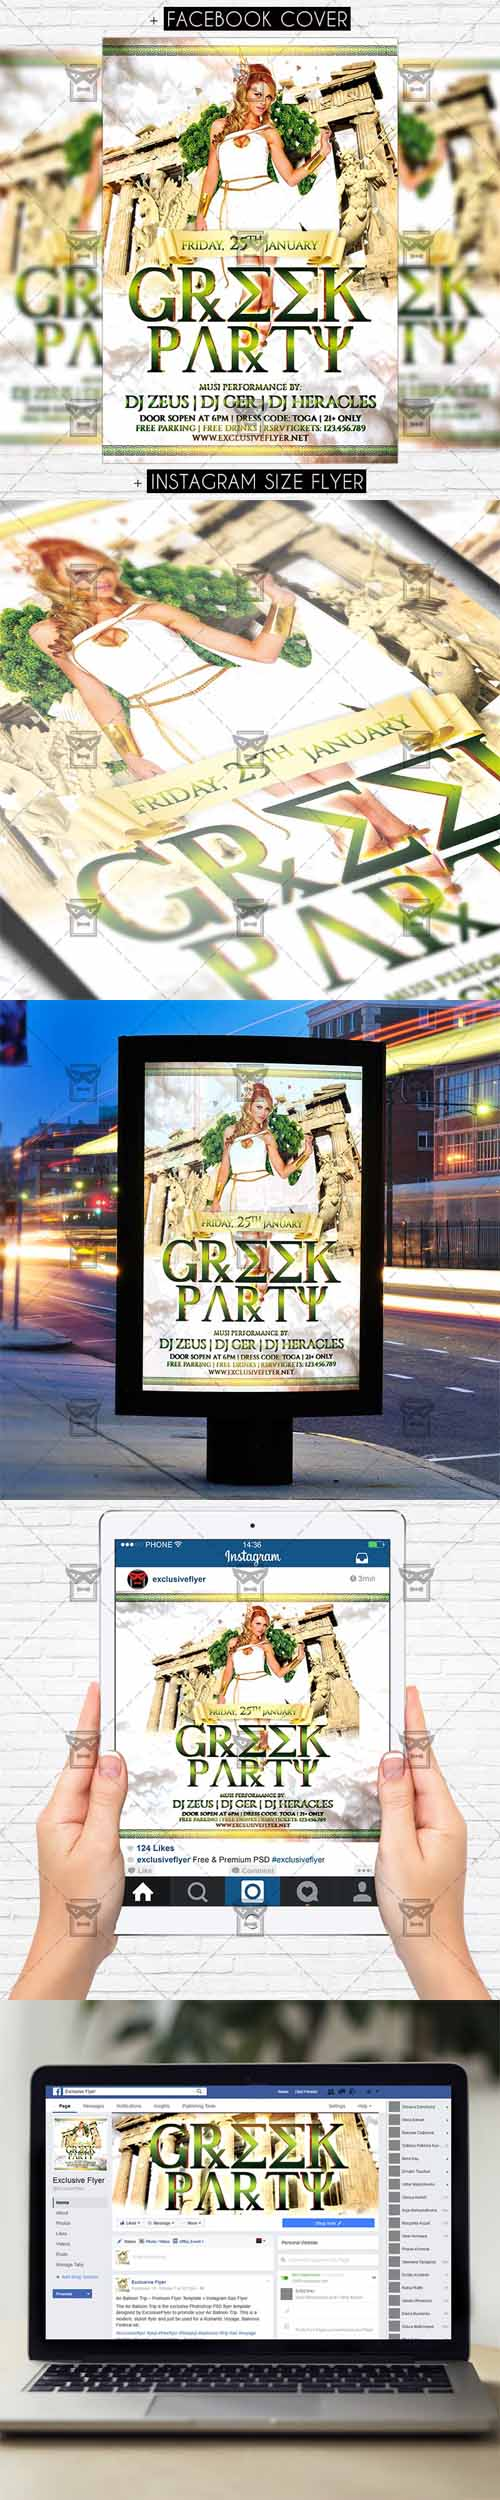 Flyer Template - Greek Party